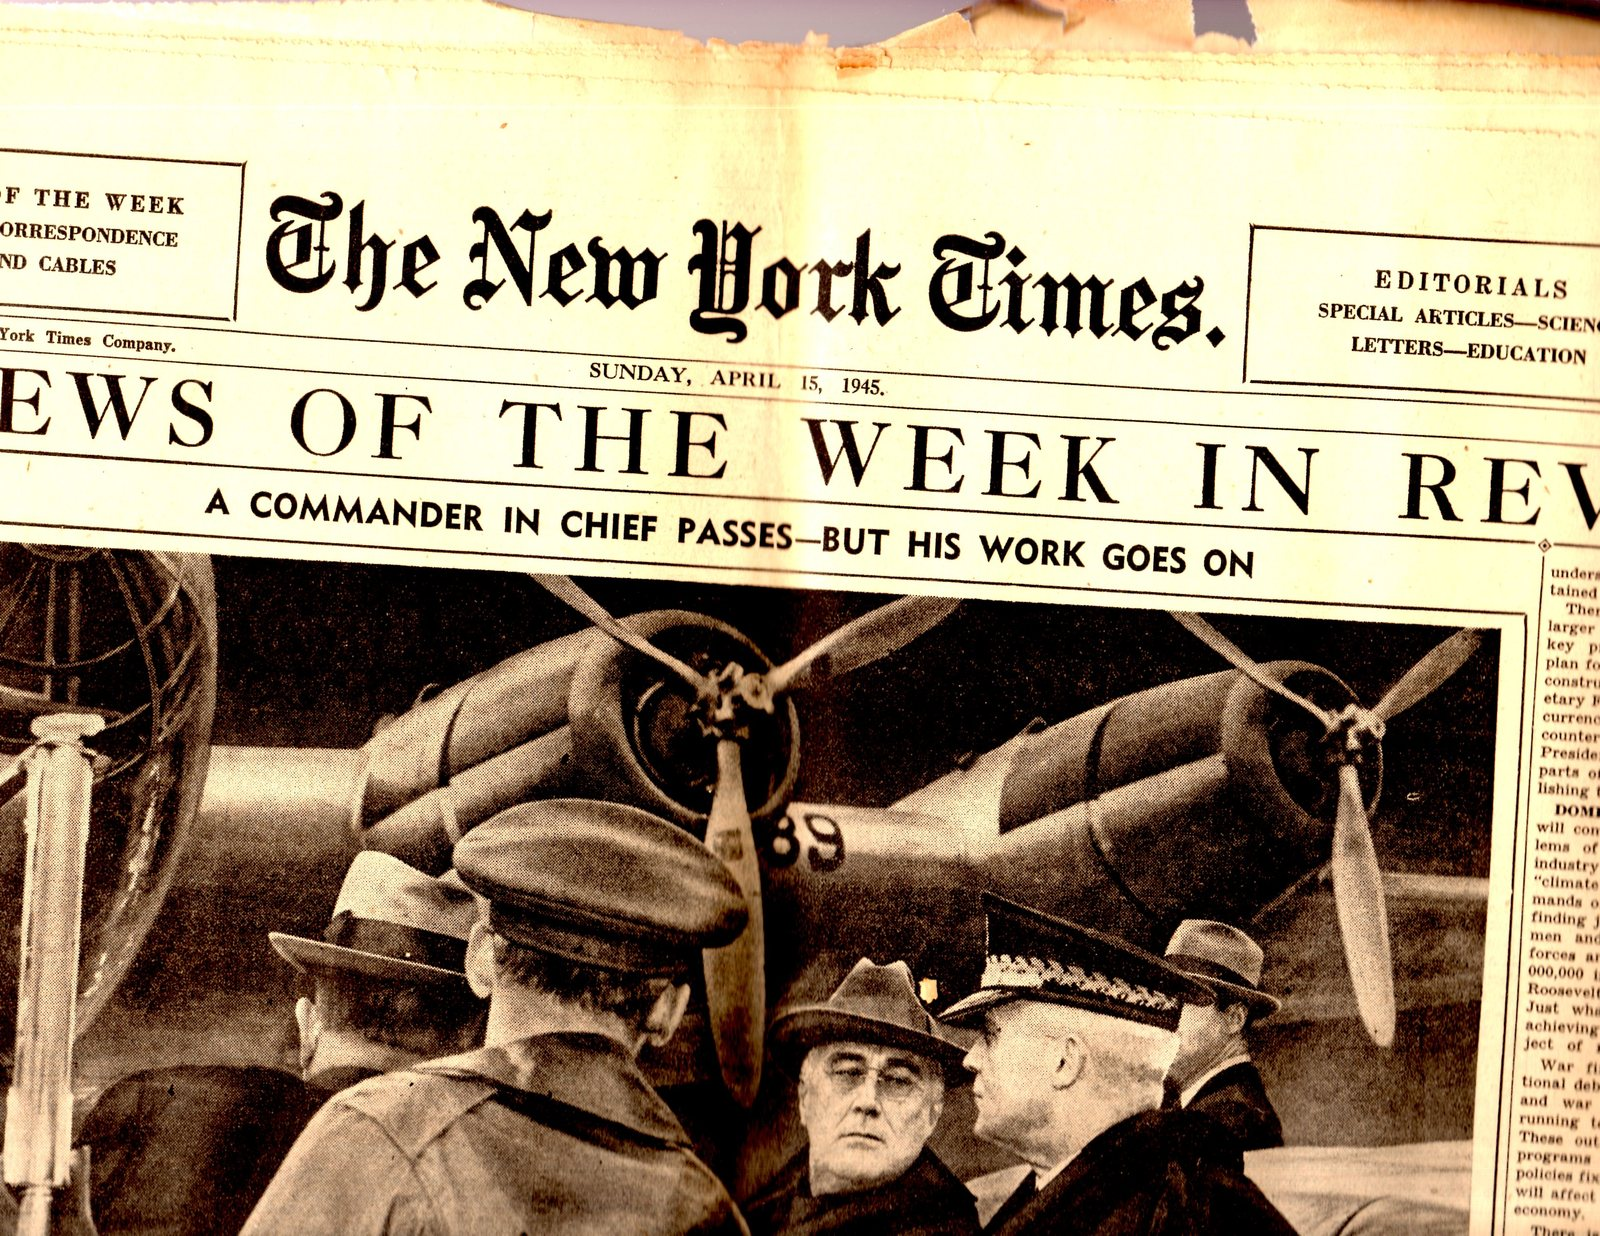 Primary image for New York Times, Sunday, April 15,1945 Section 4 The News of the Week In Review